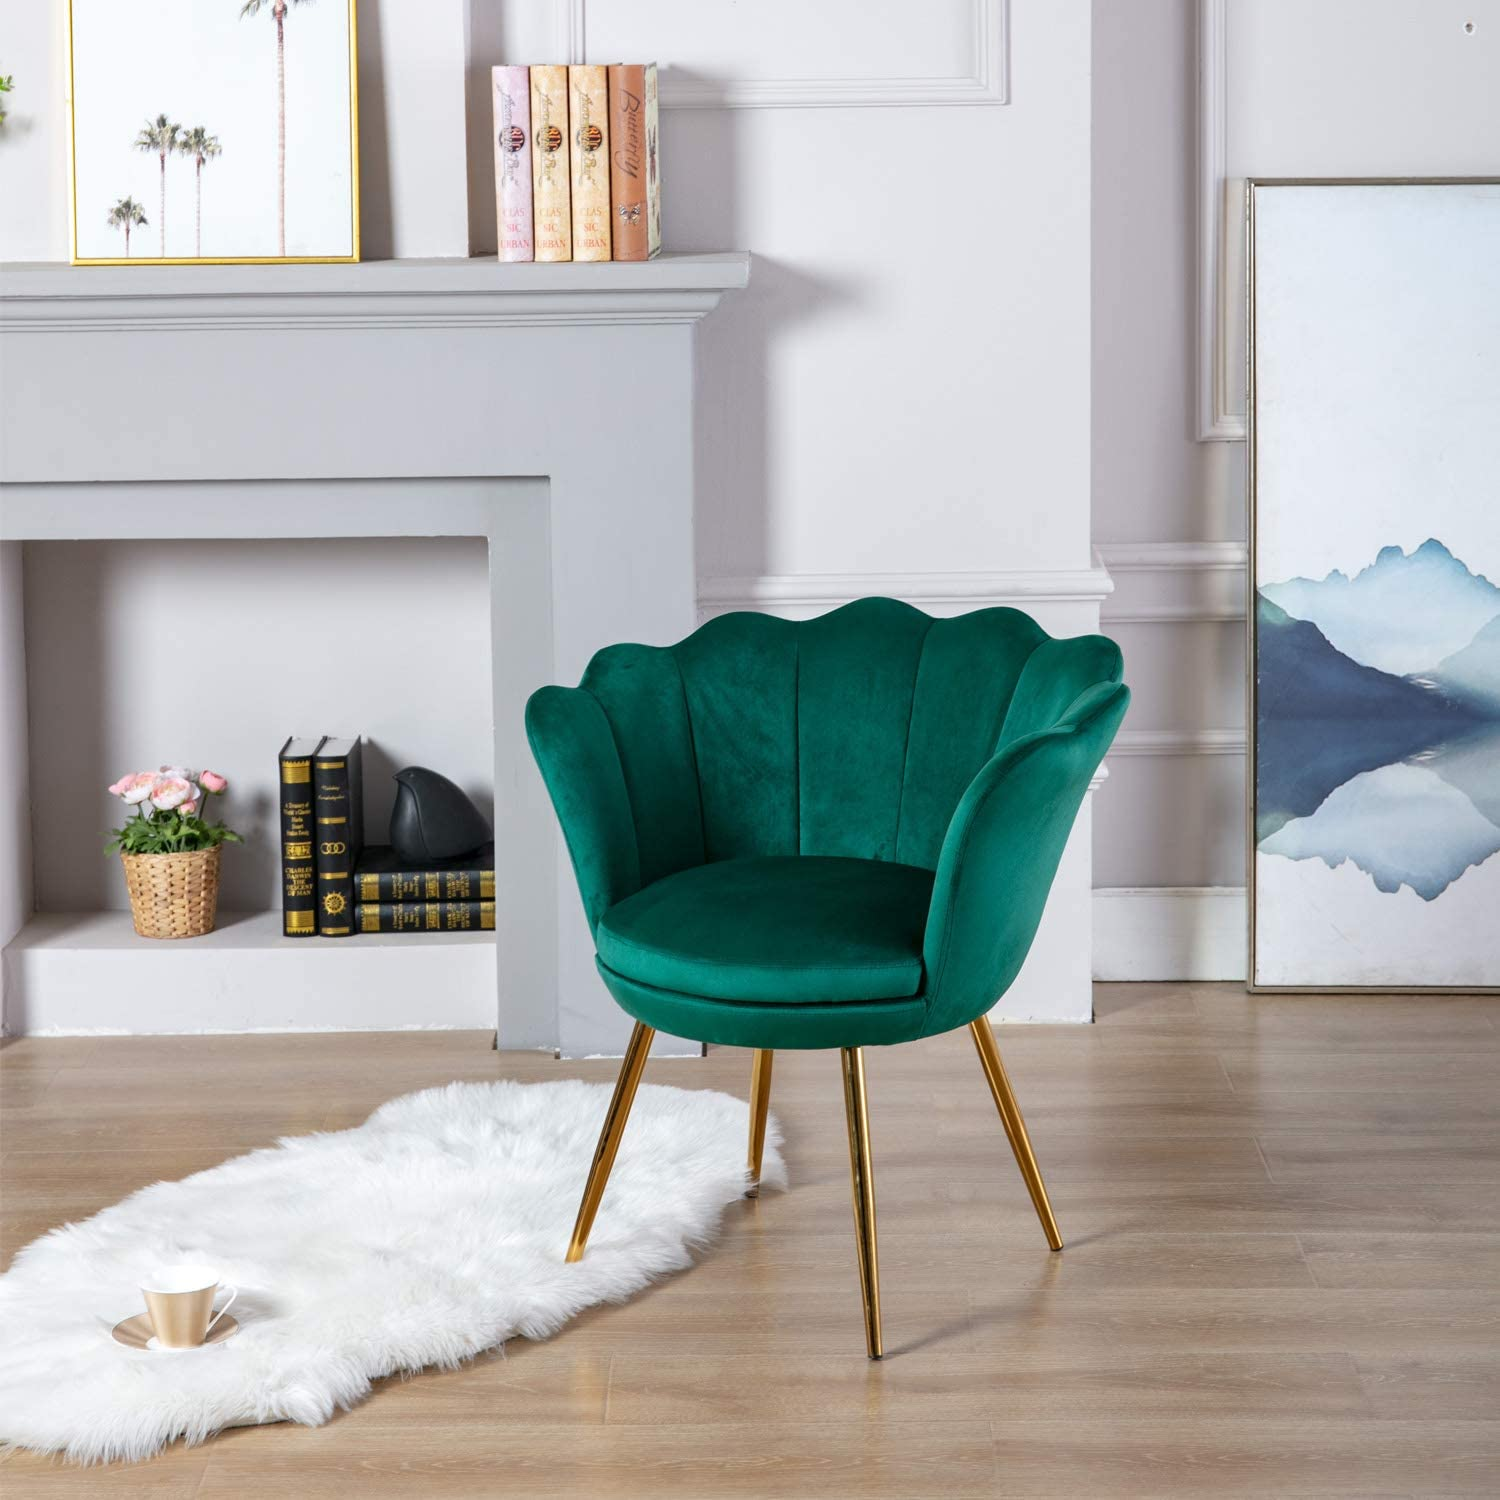 Wahson Velvet Accent Chair For Bedroom With Gold Plating Metal Legs Leisure Armchair For Living Room Cafe Vanity Green Amazon Co Uk Kitchen Home